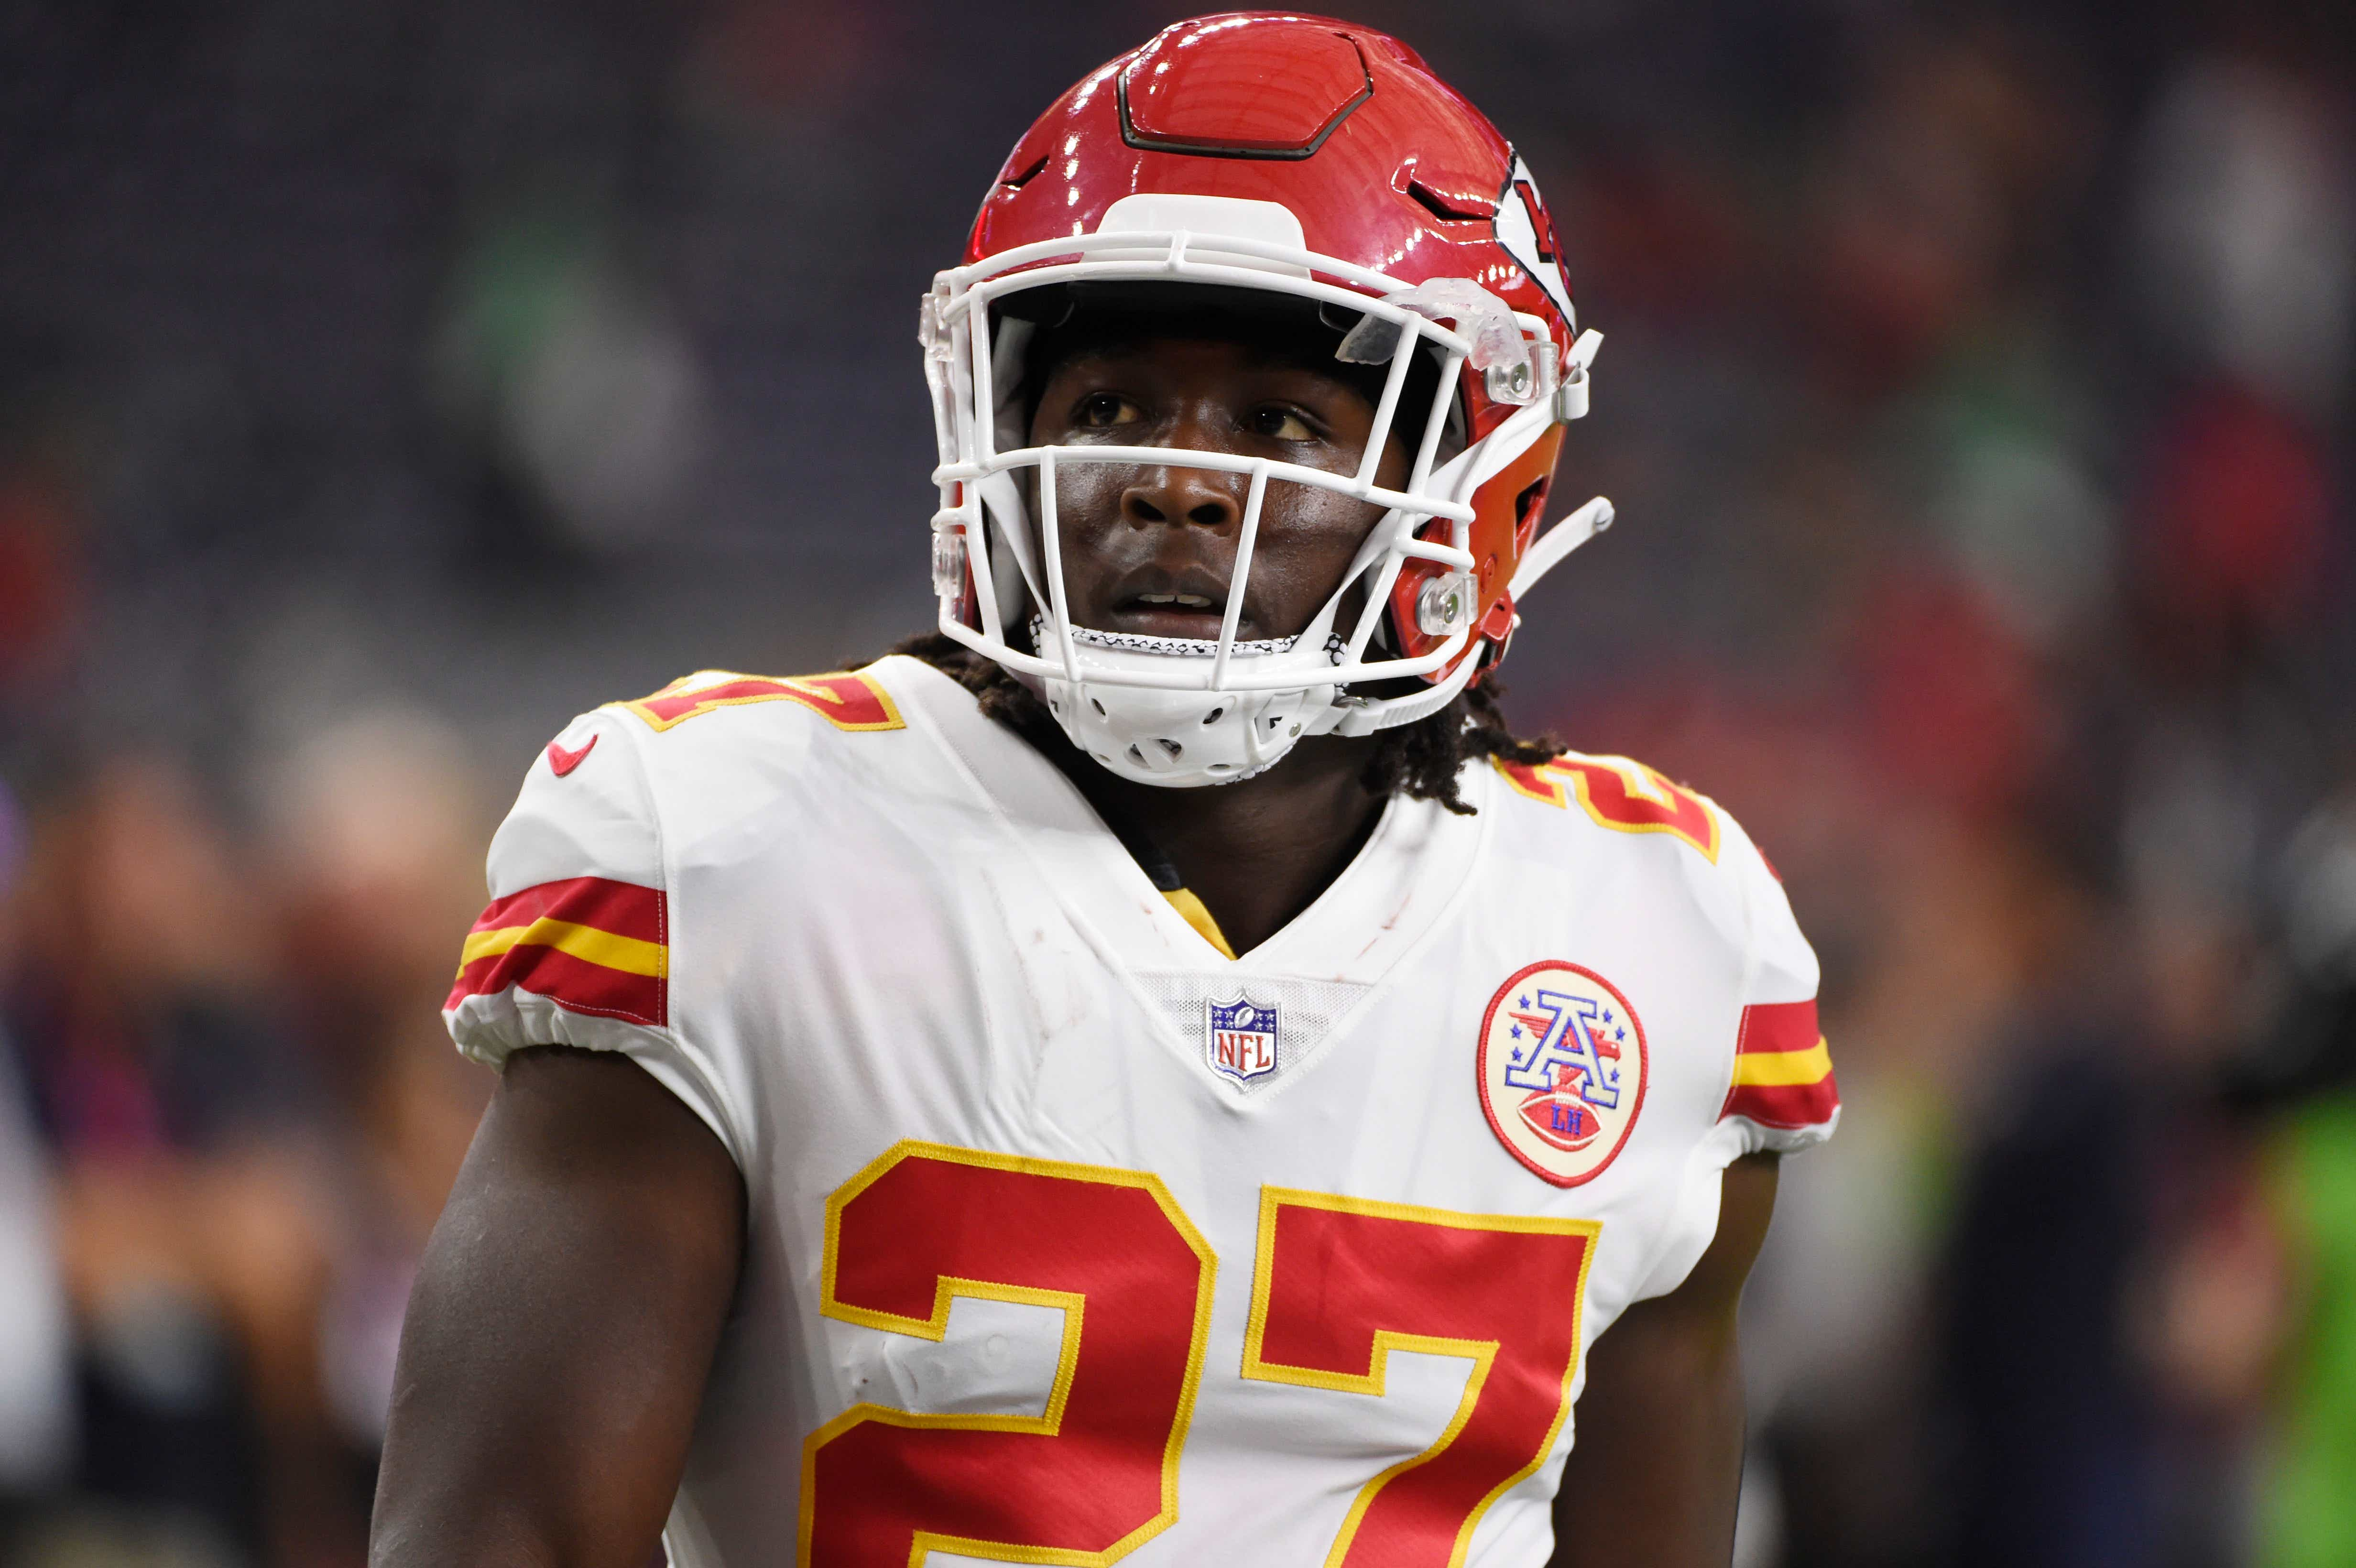 2b6bf891 Woman's 911 call after physical altercation with Kareem Hunt